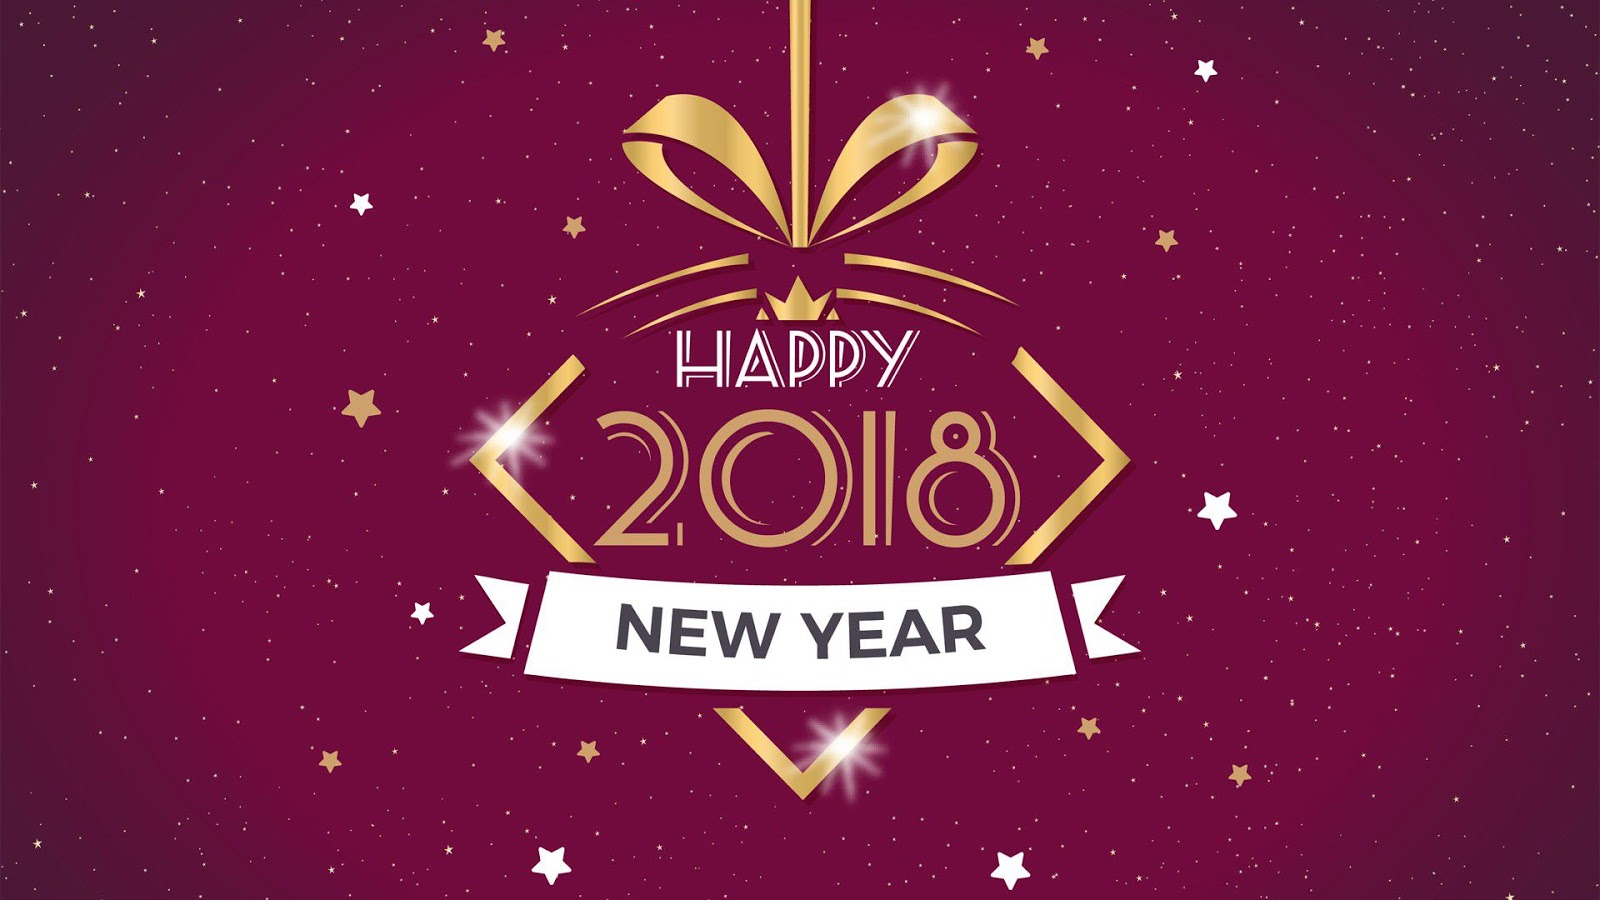 500+] happy new year 2018 hd wallpapers, images, pictures, gif, live